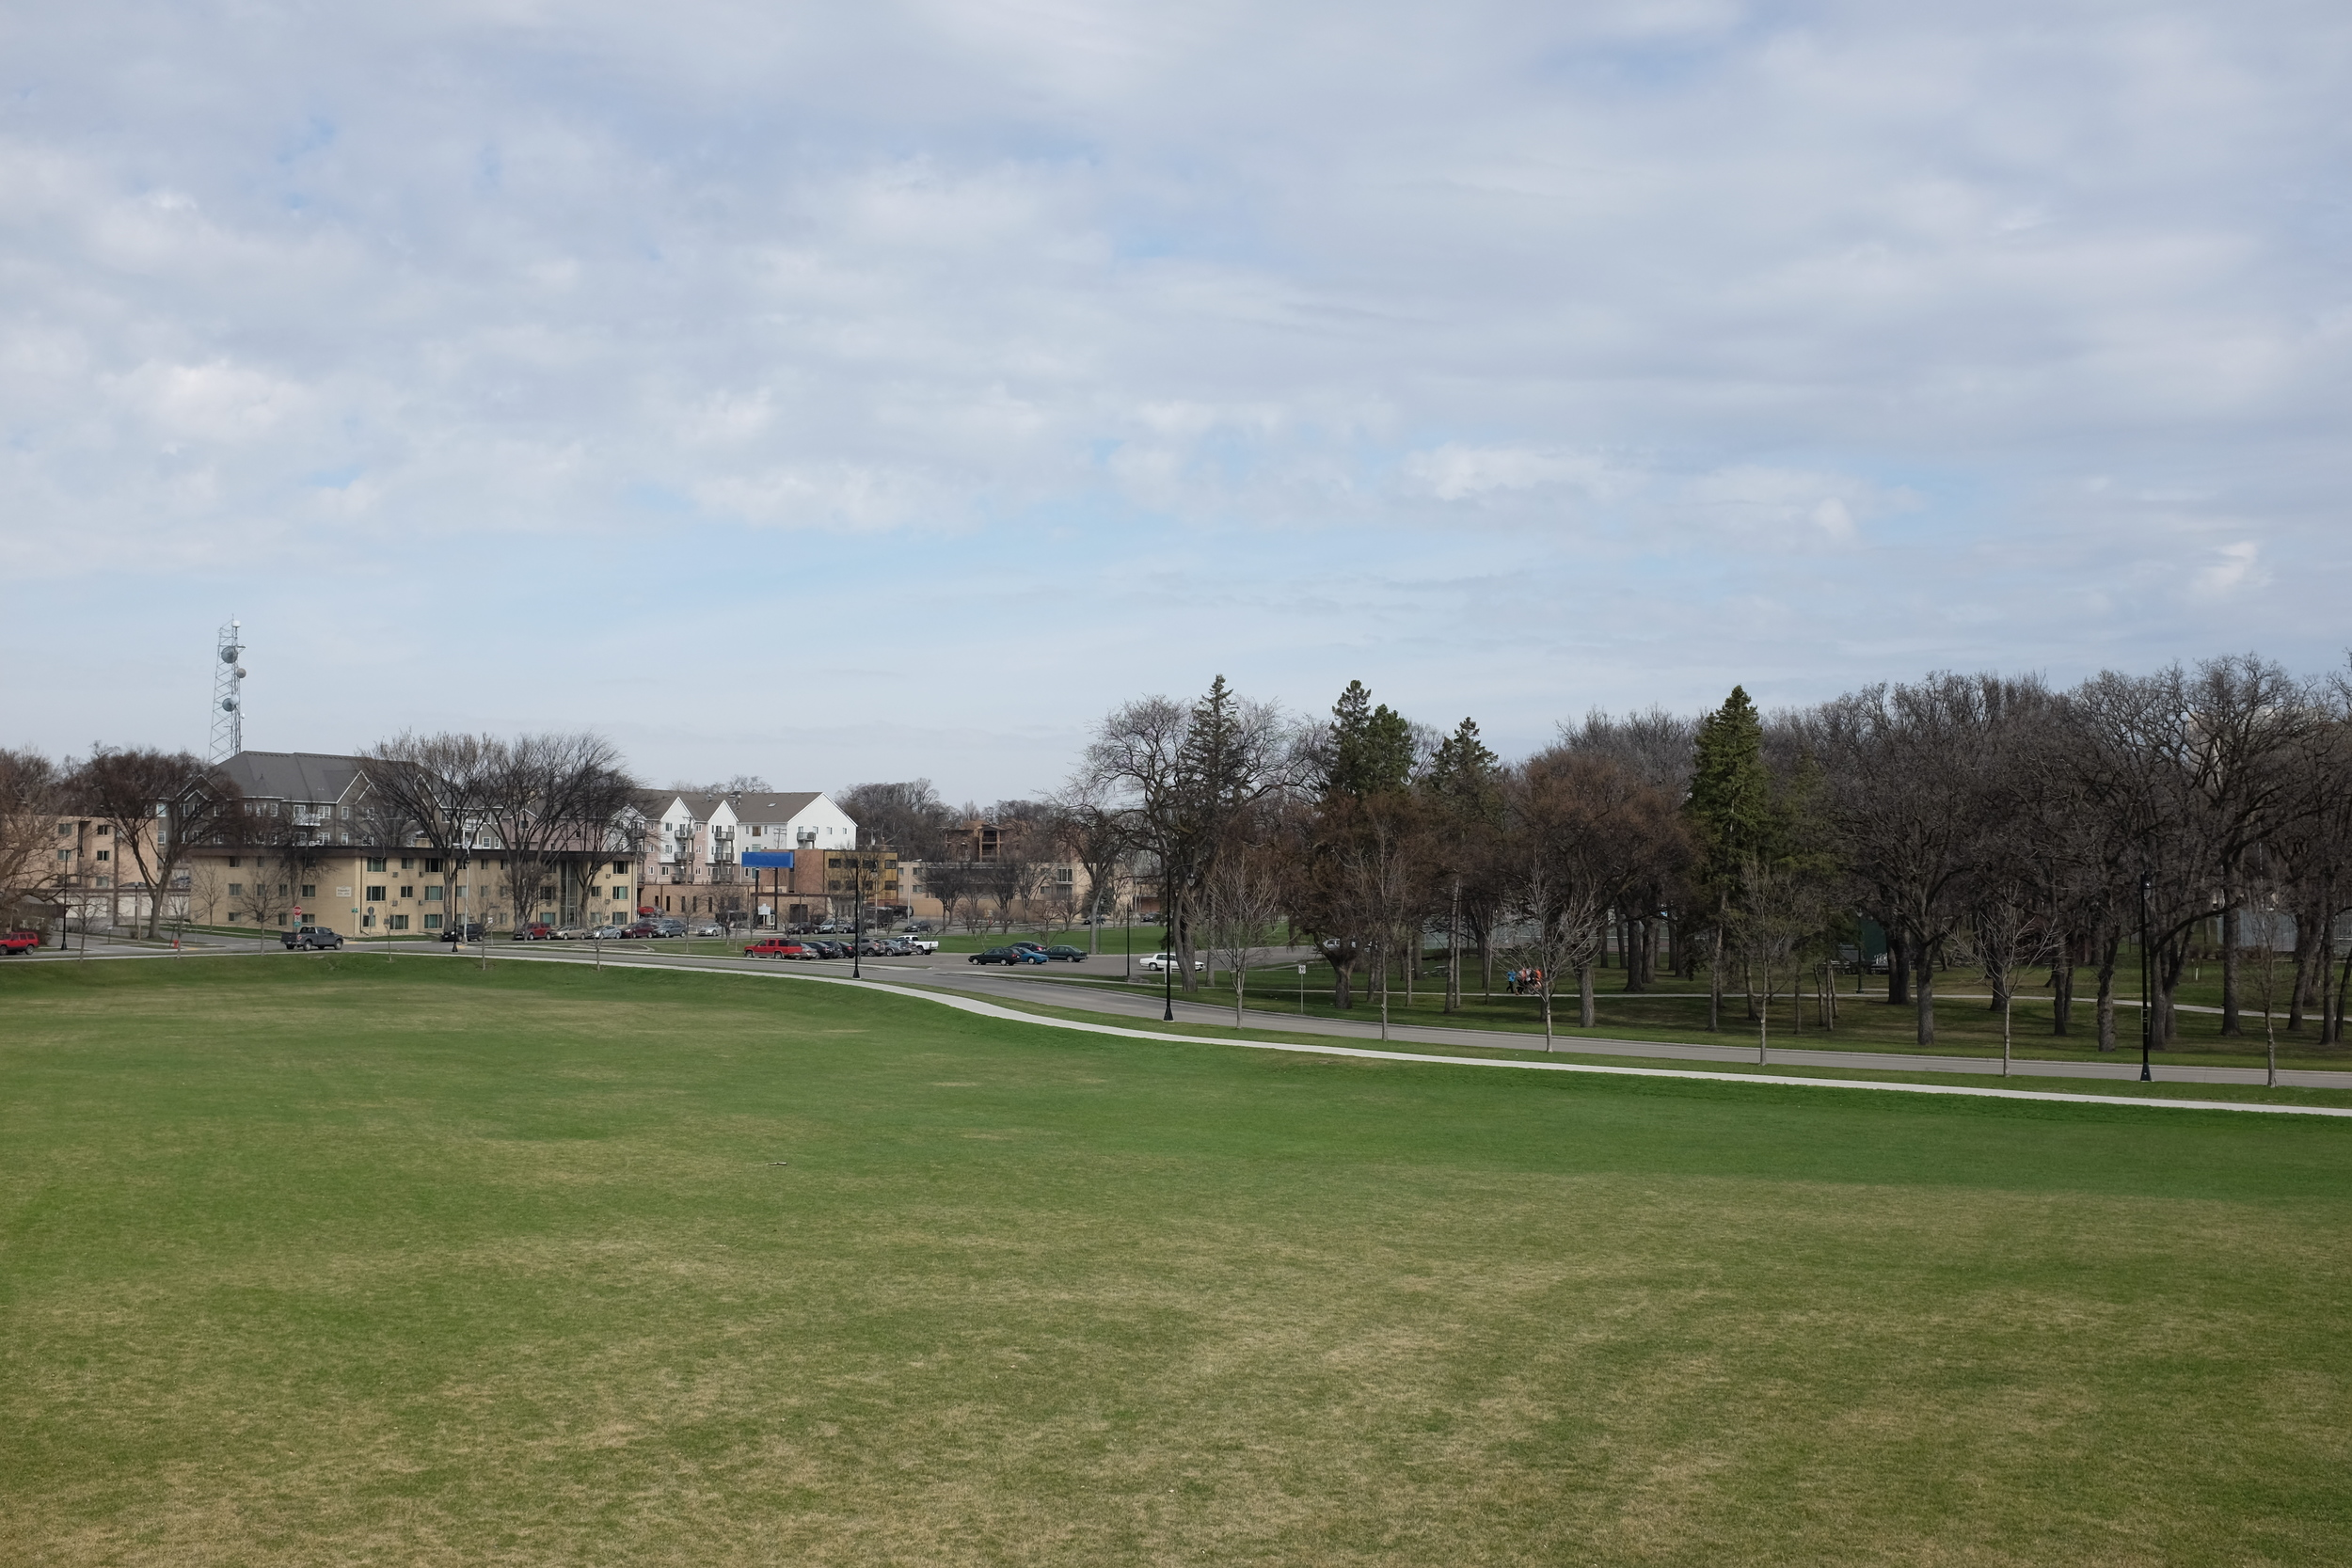 The view of Island Park from Hawthorne Elementary